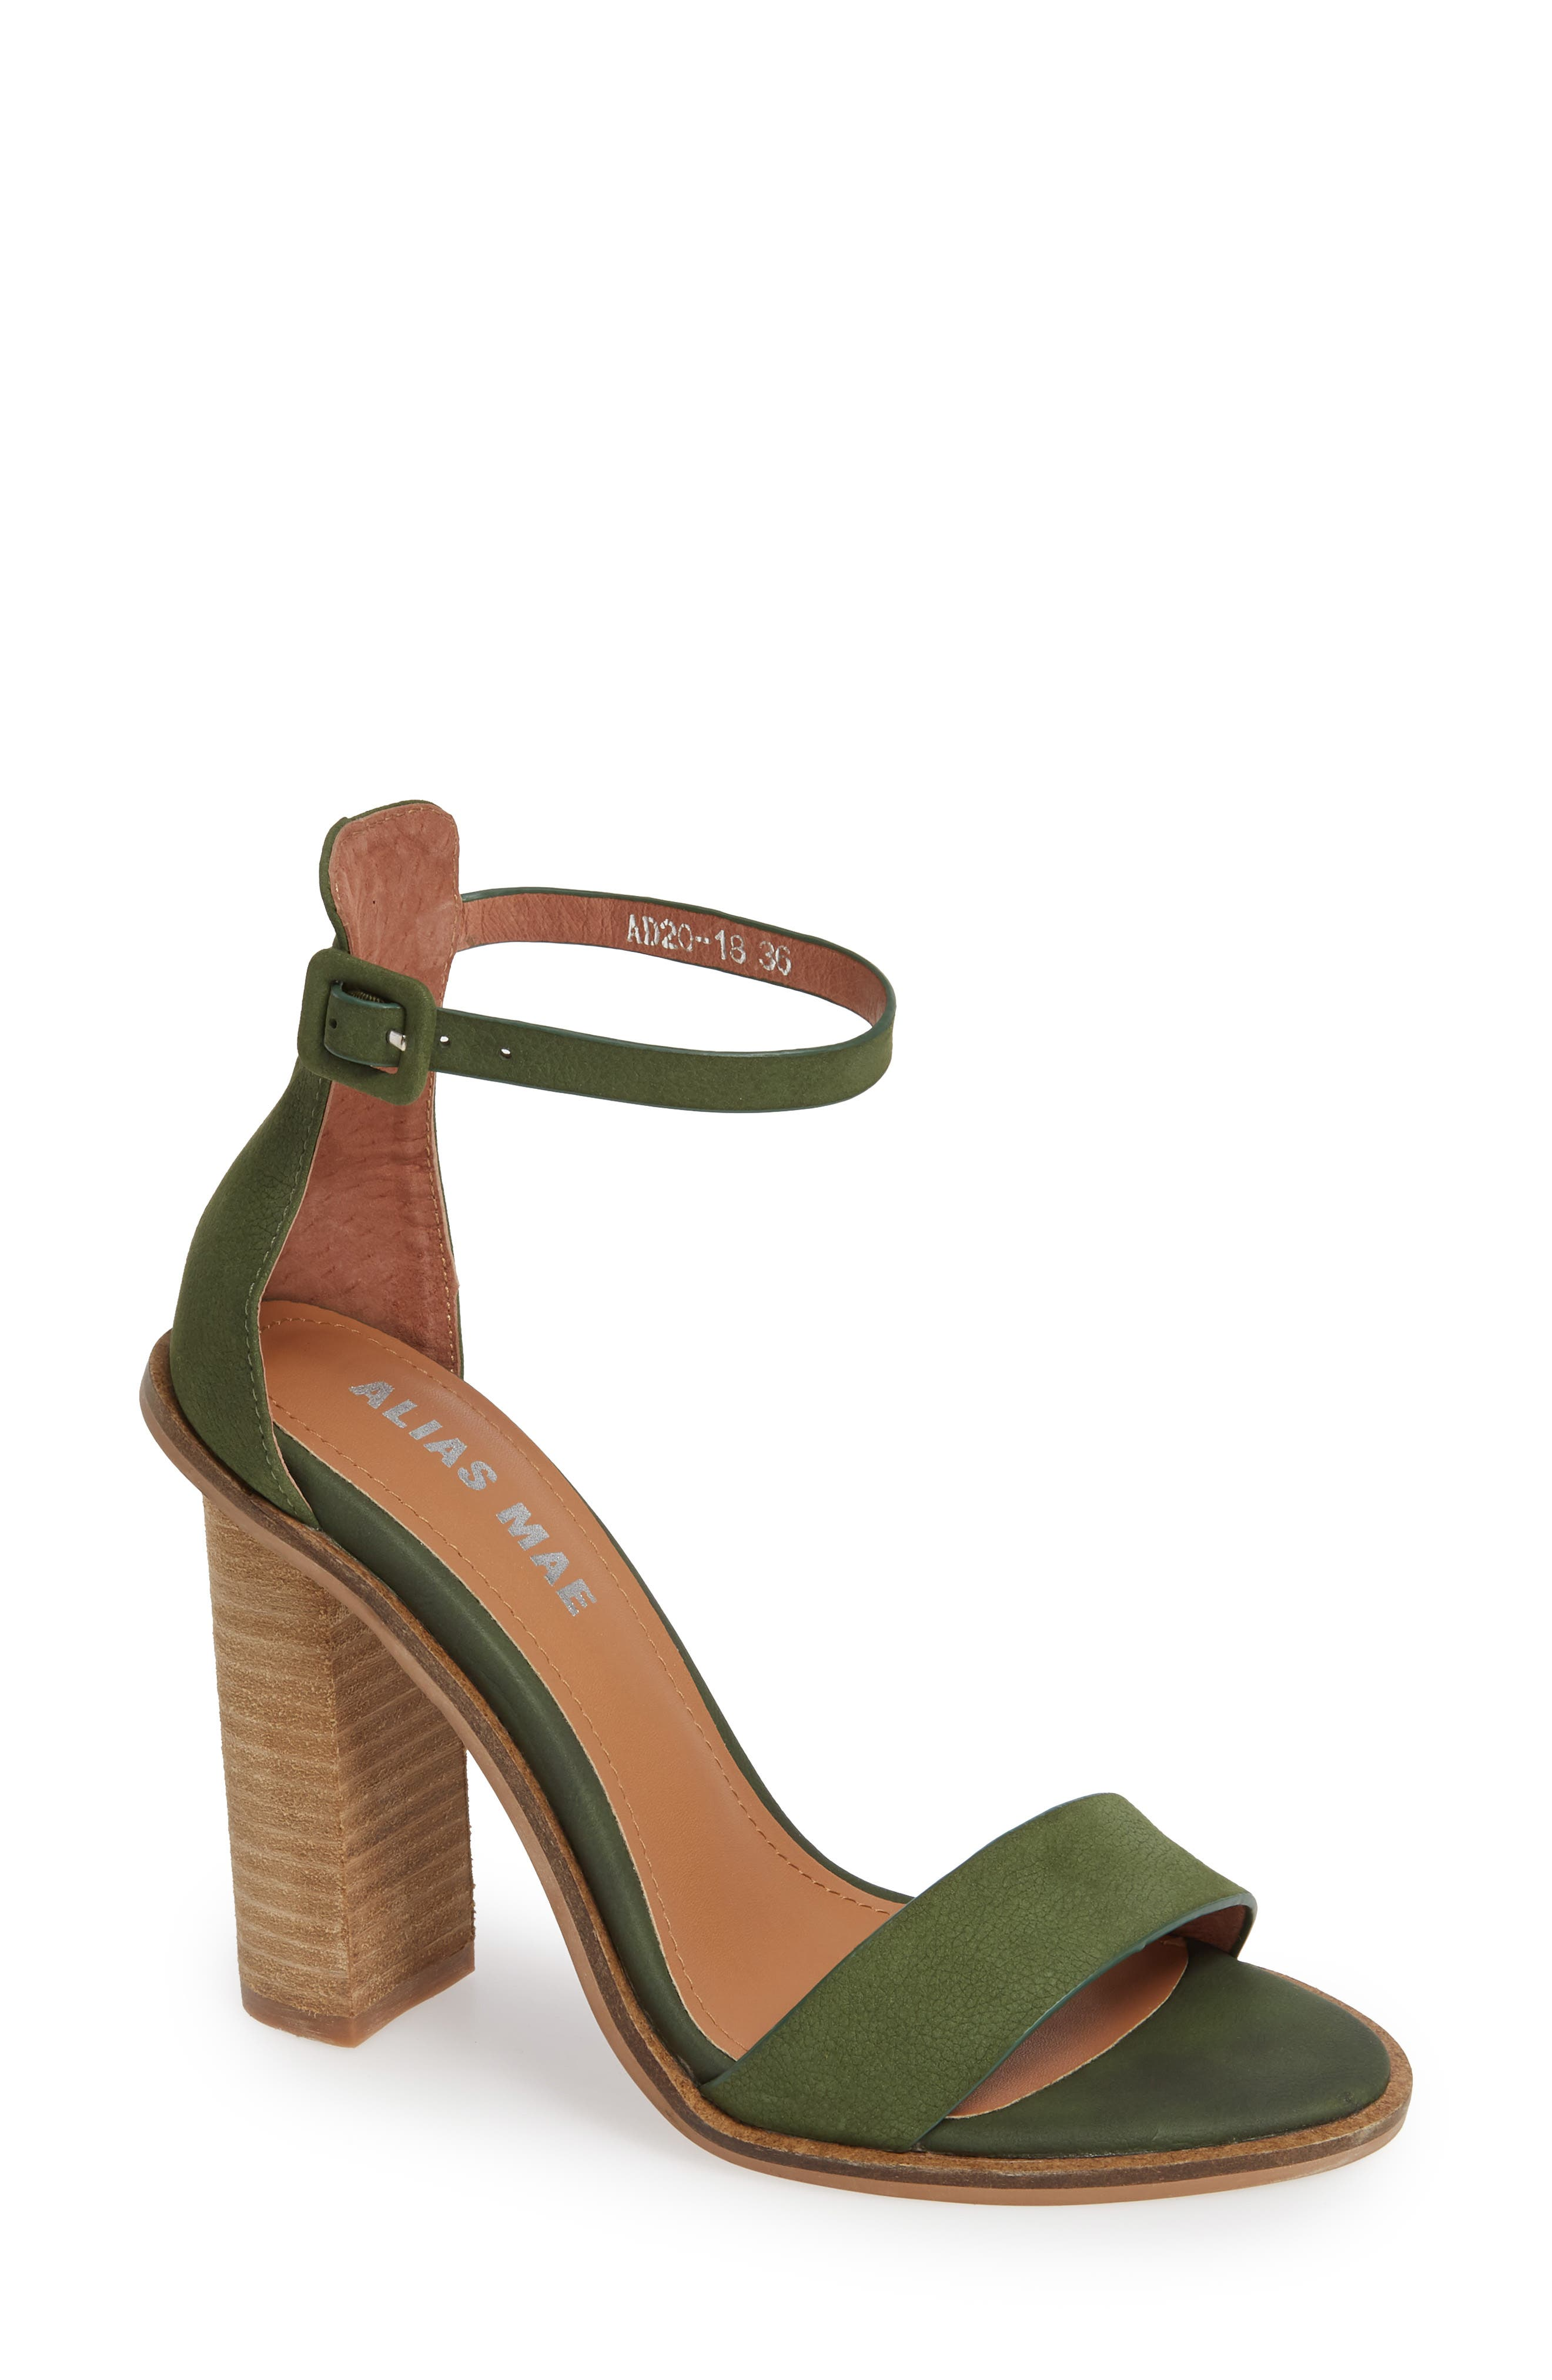 ALIAS MAE Addax Sandal in Moss Leather